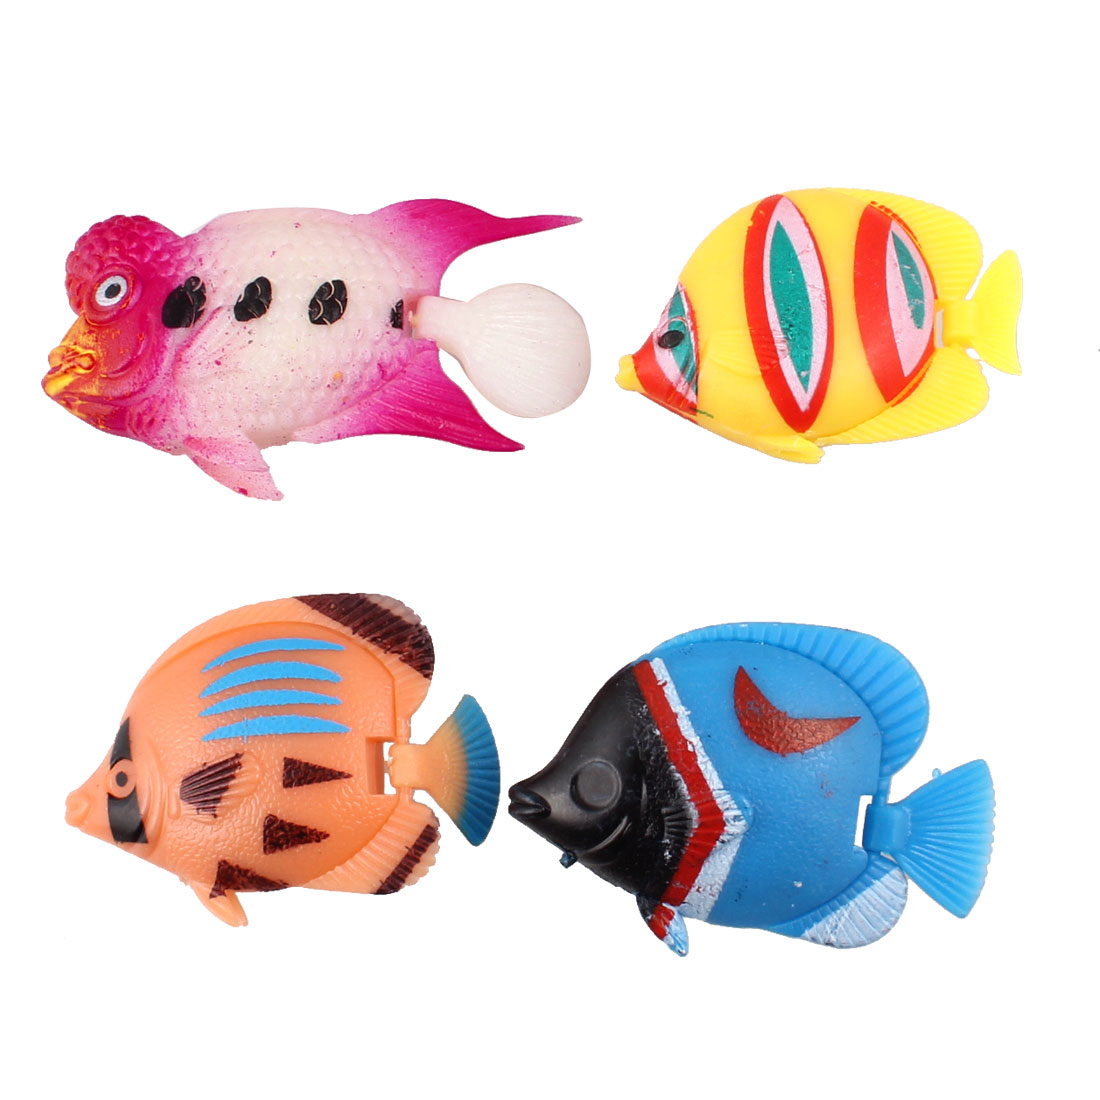 4 in 1 Multicolor Artificial Plastic Movable Tail Fishes for Fish Tank